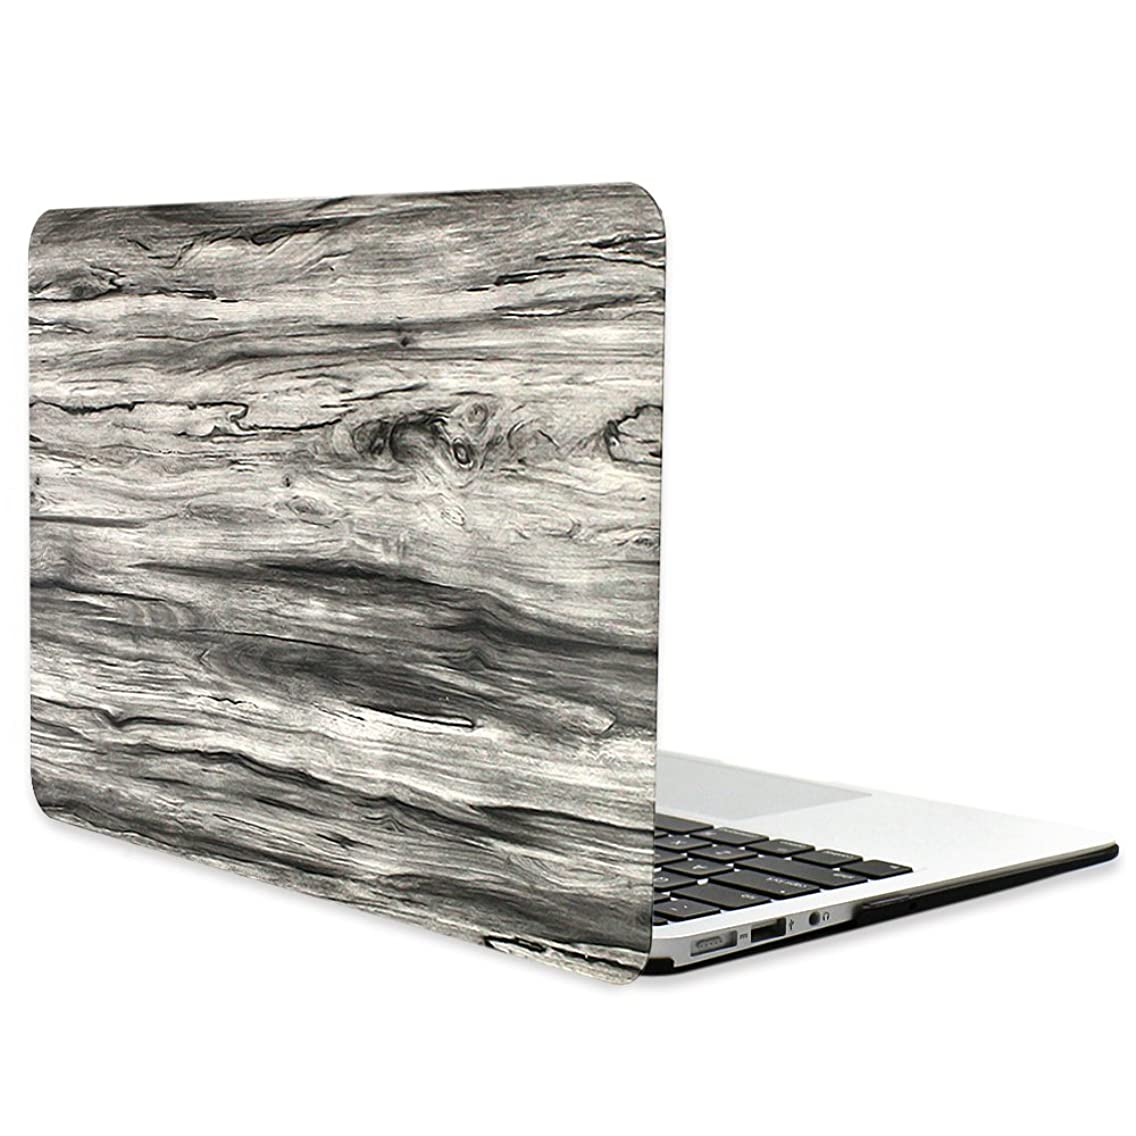 Masino Wood Grain Series Hard Shell Case Protective Rubberized Cover for MacBook Pro 15-Inch 15